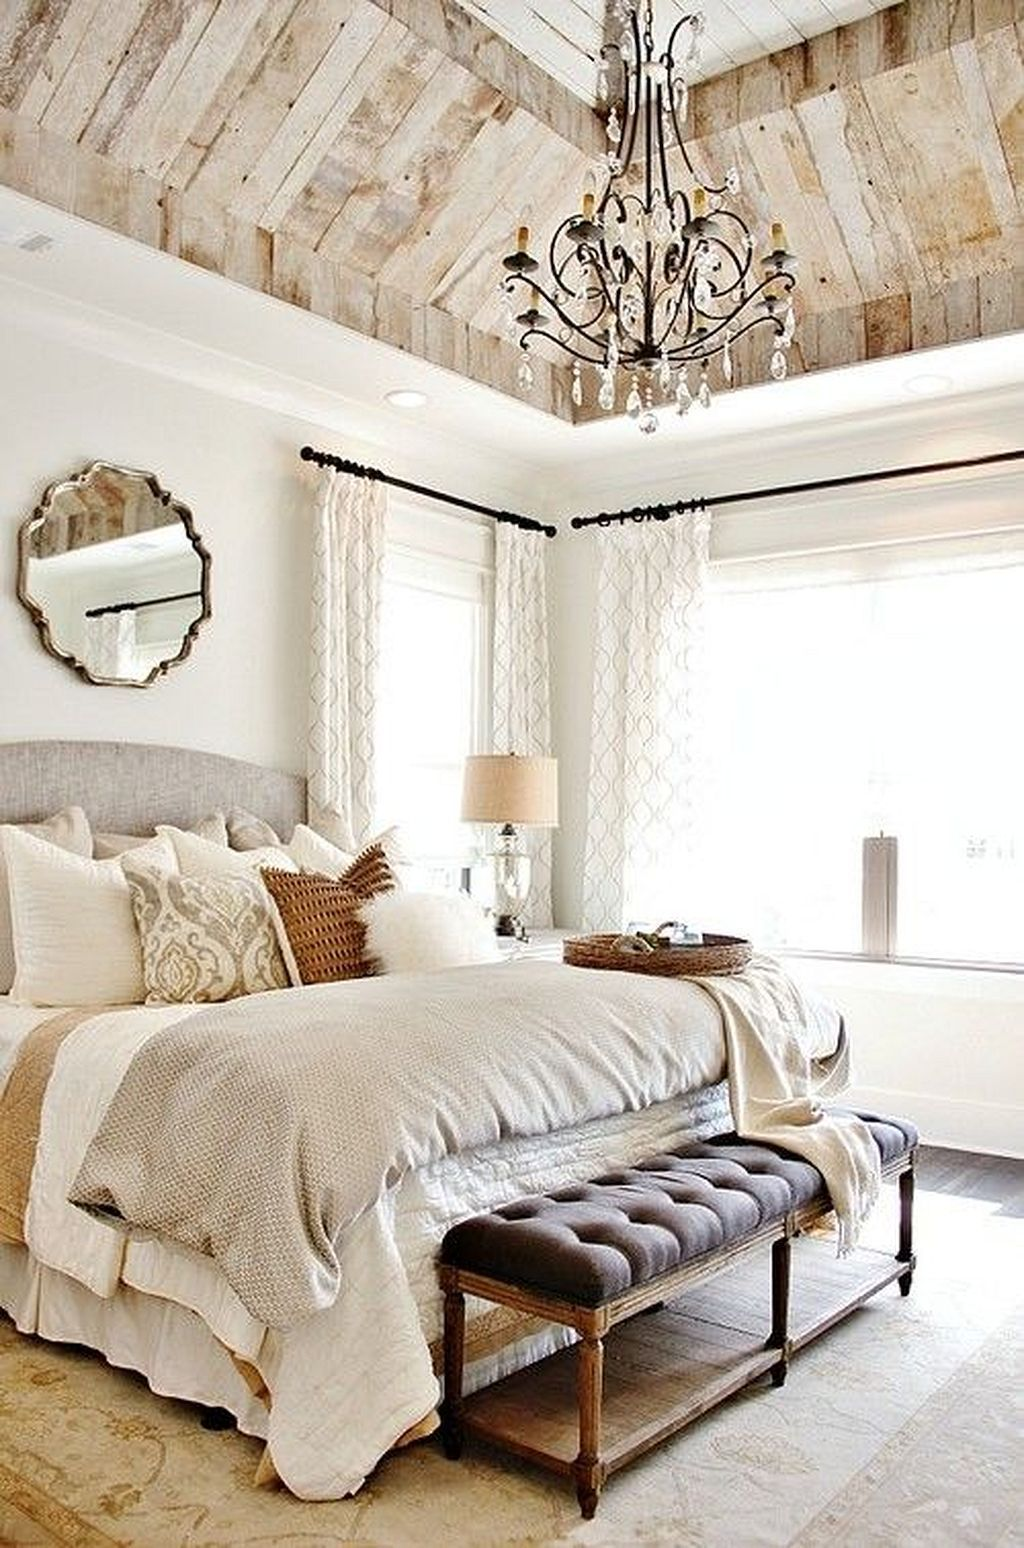 Amazing romantic shabby chic bedroom decor and furniture ideas